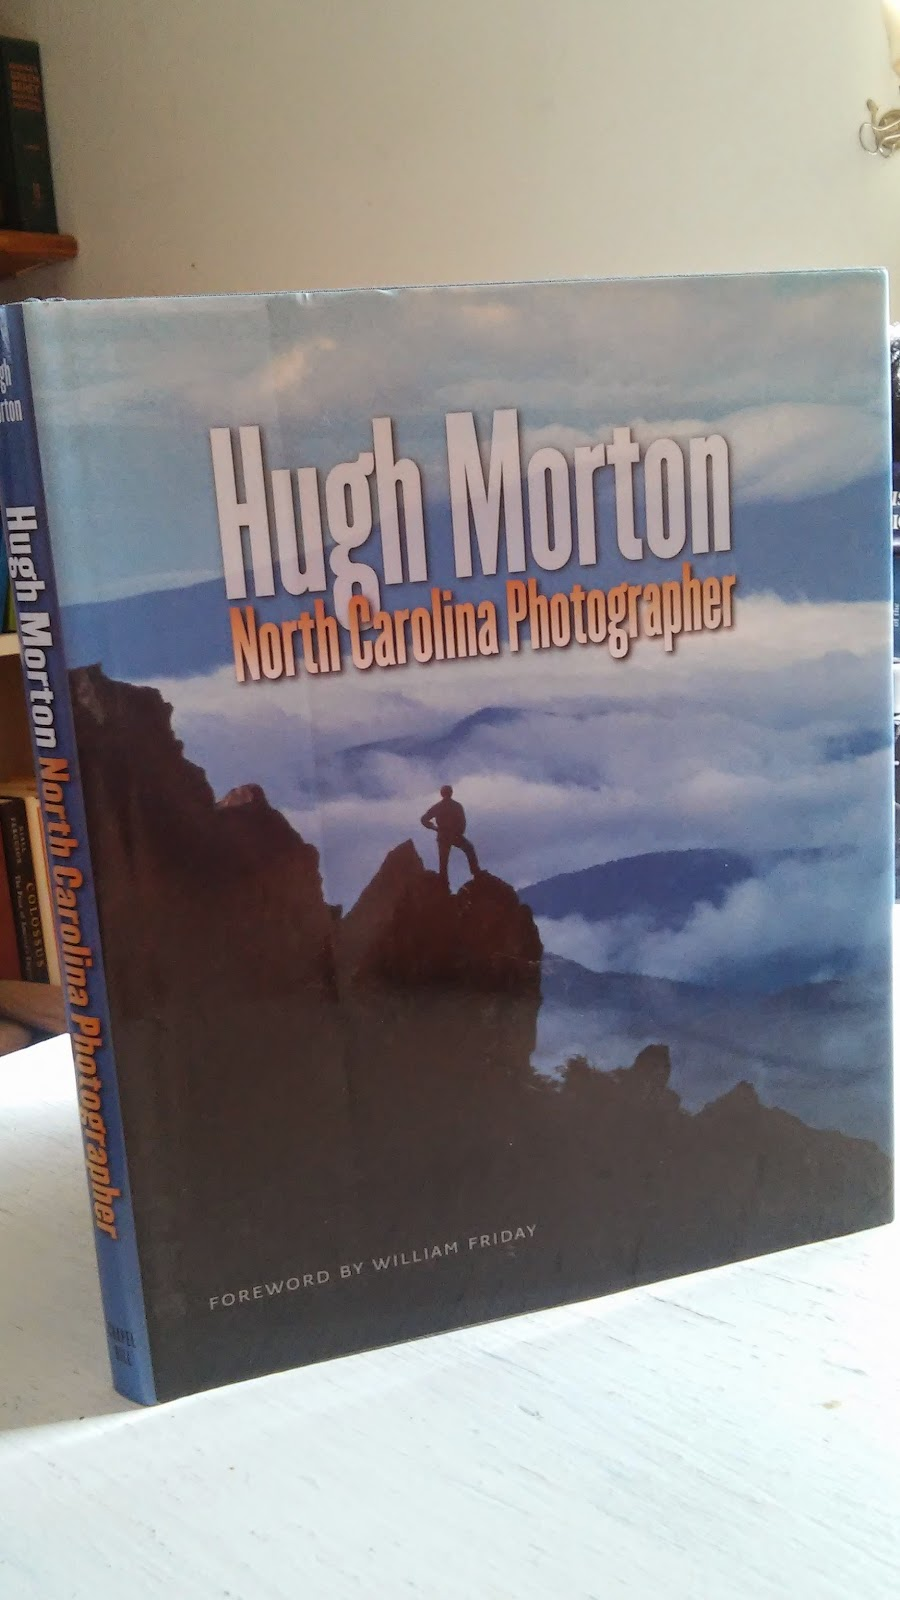 hguh morton photographer.jpg